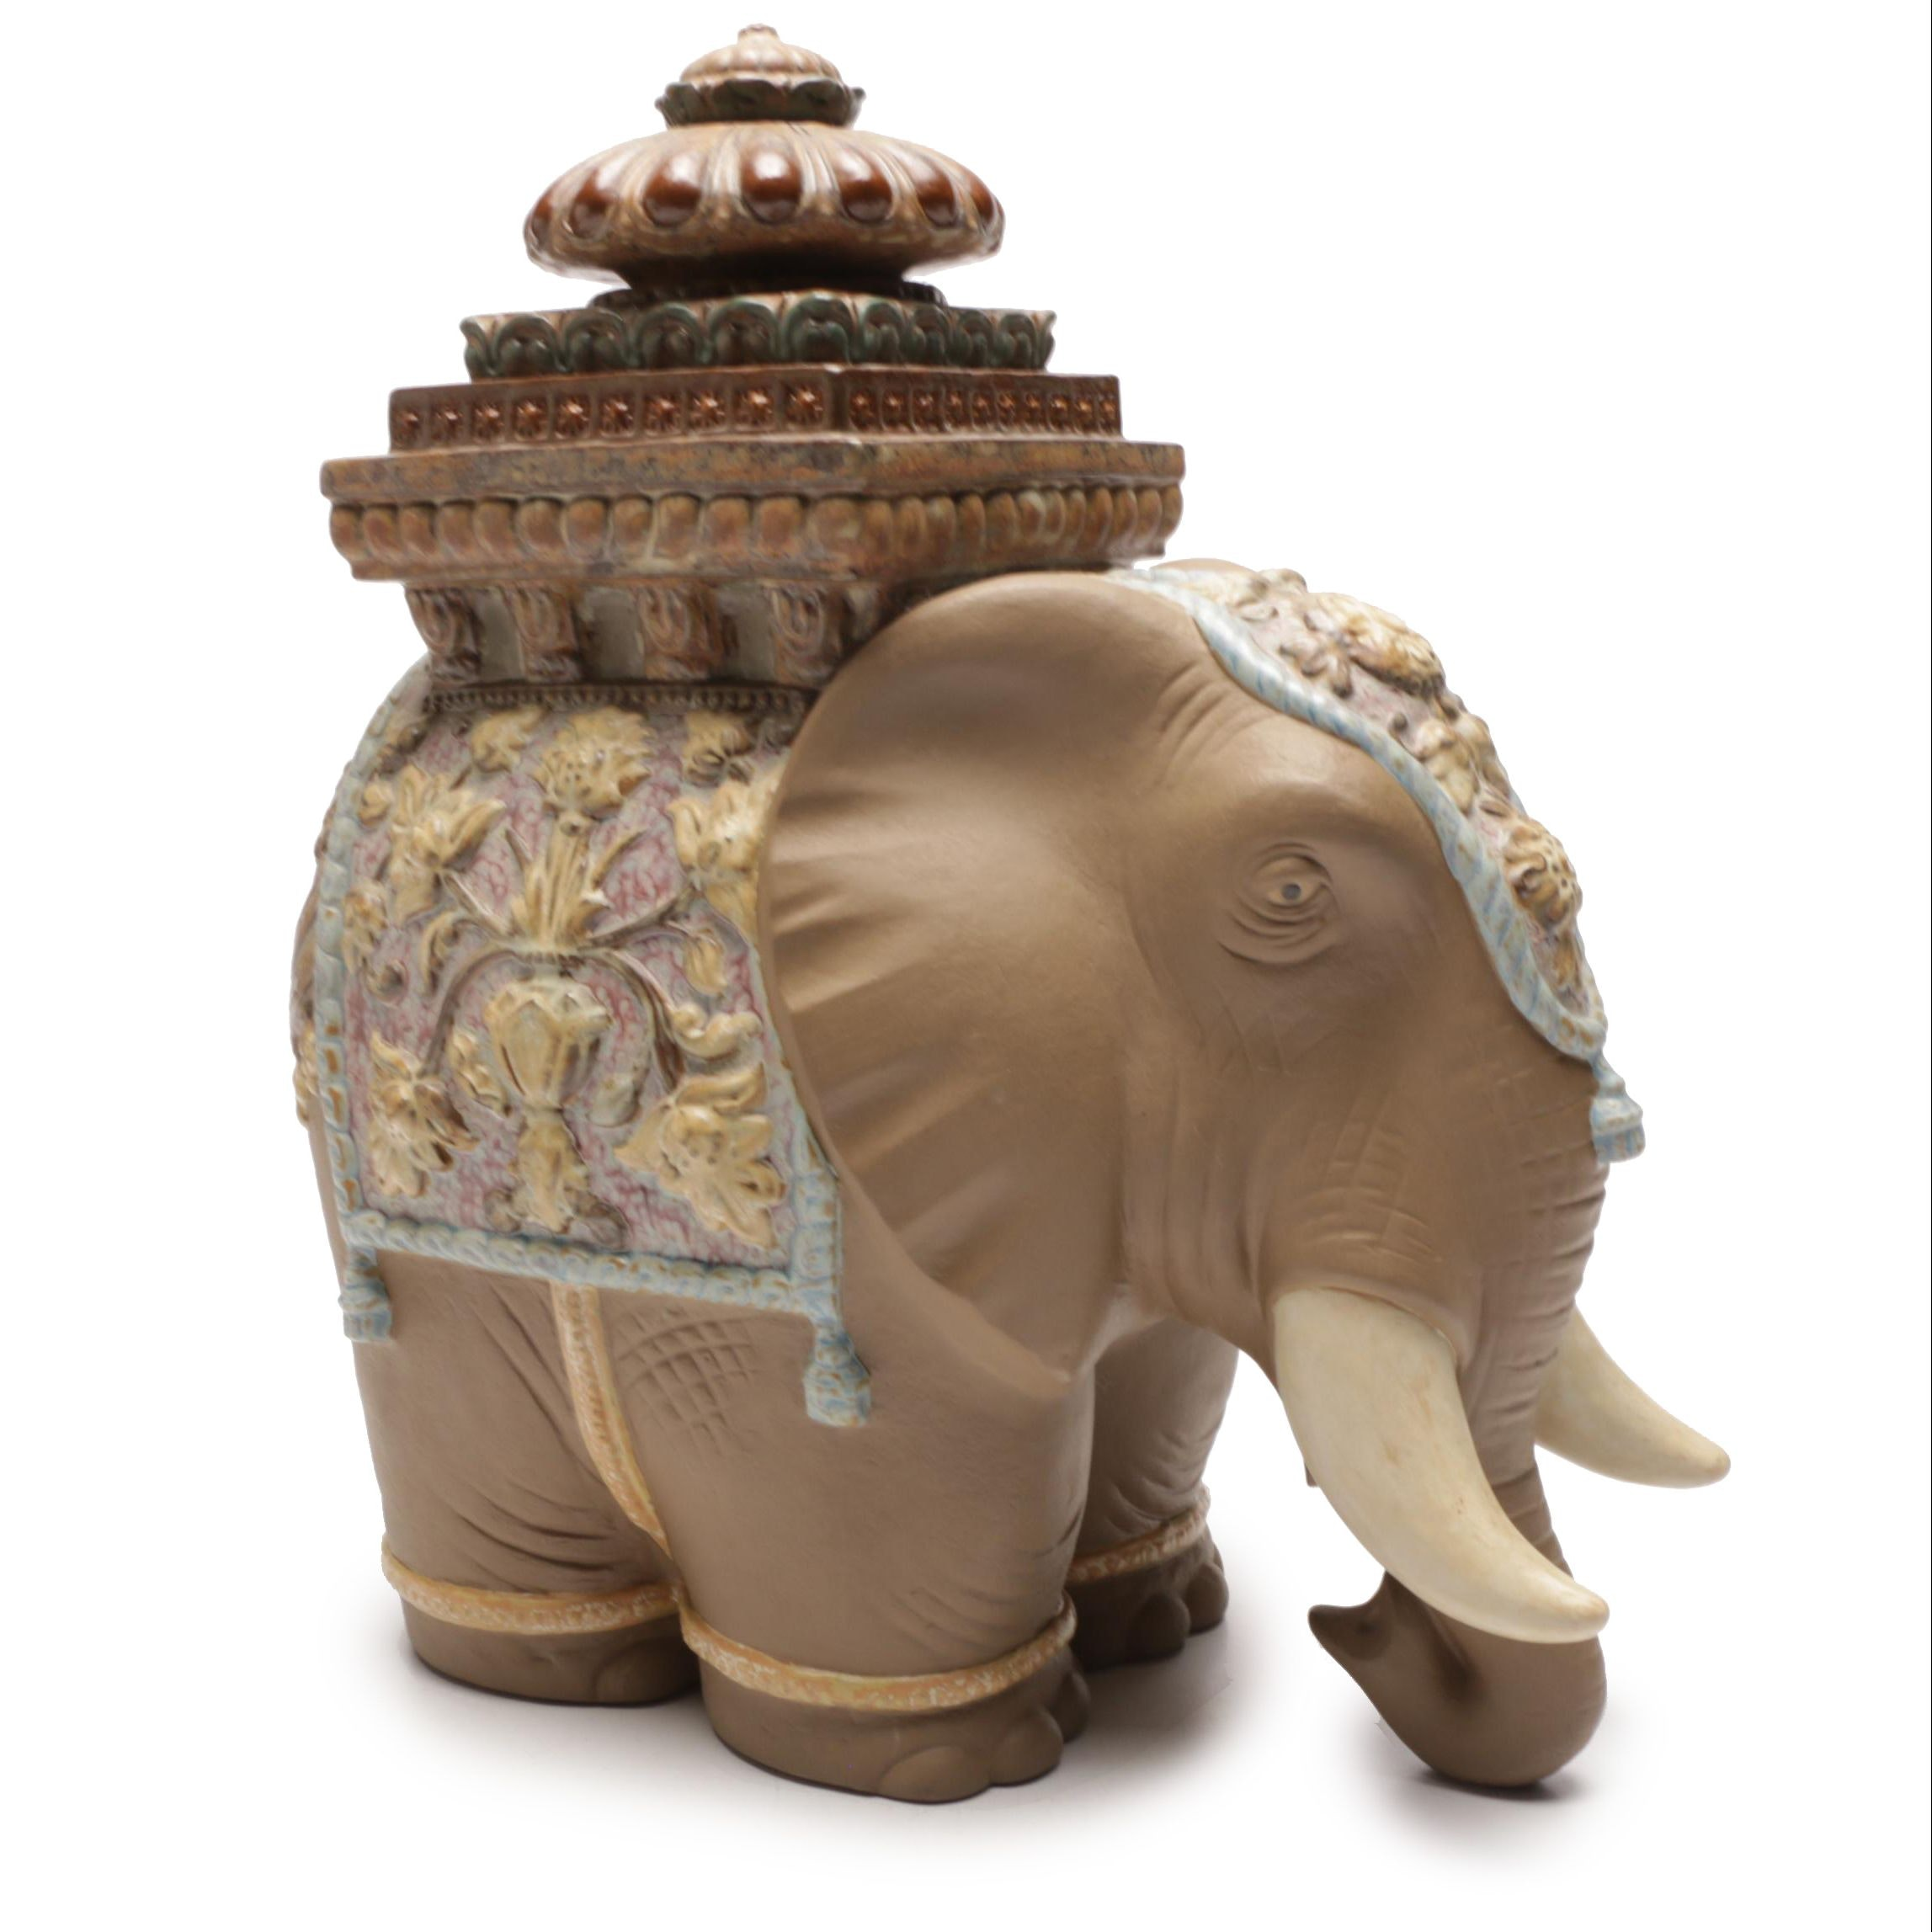 Lladro Elephant Sculpture by Antonio Ballester